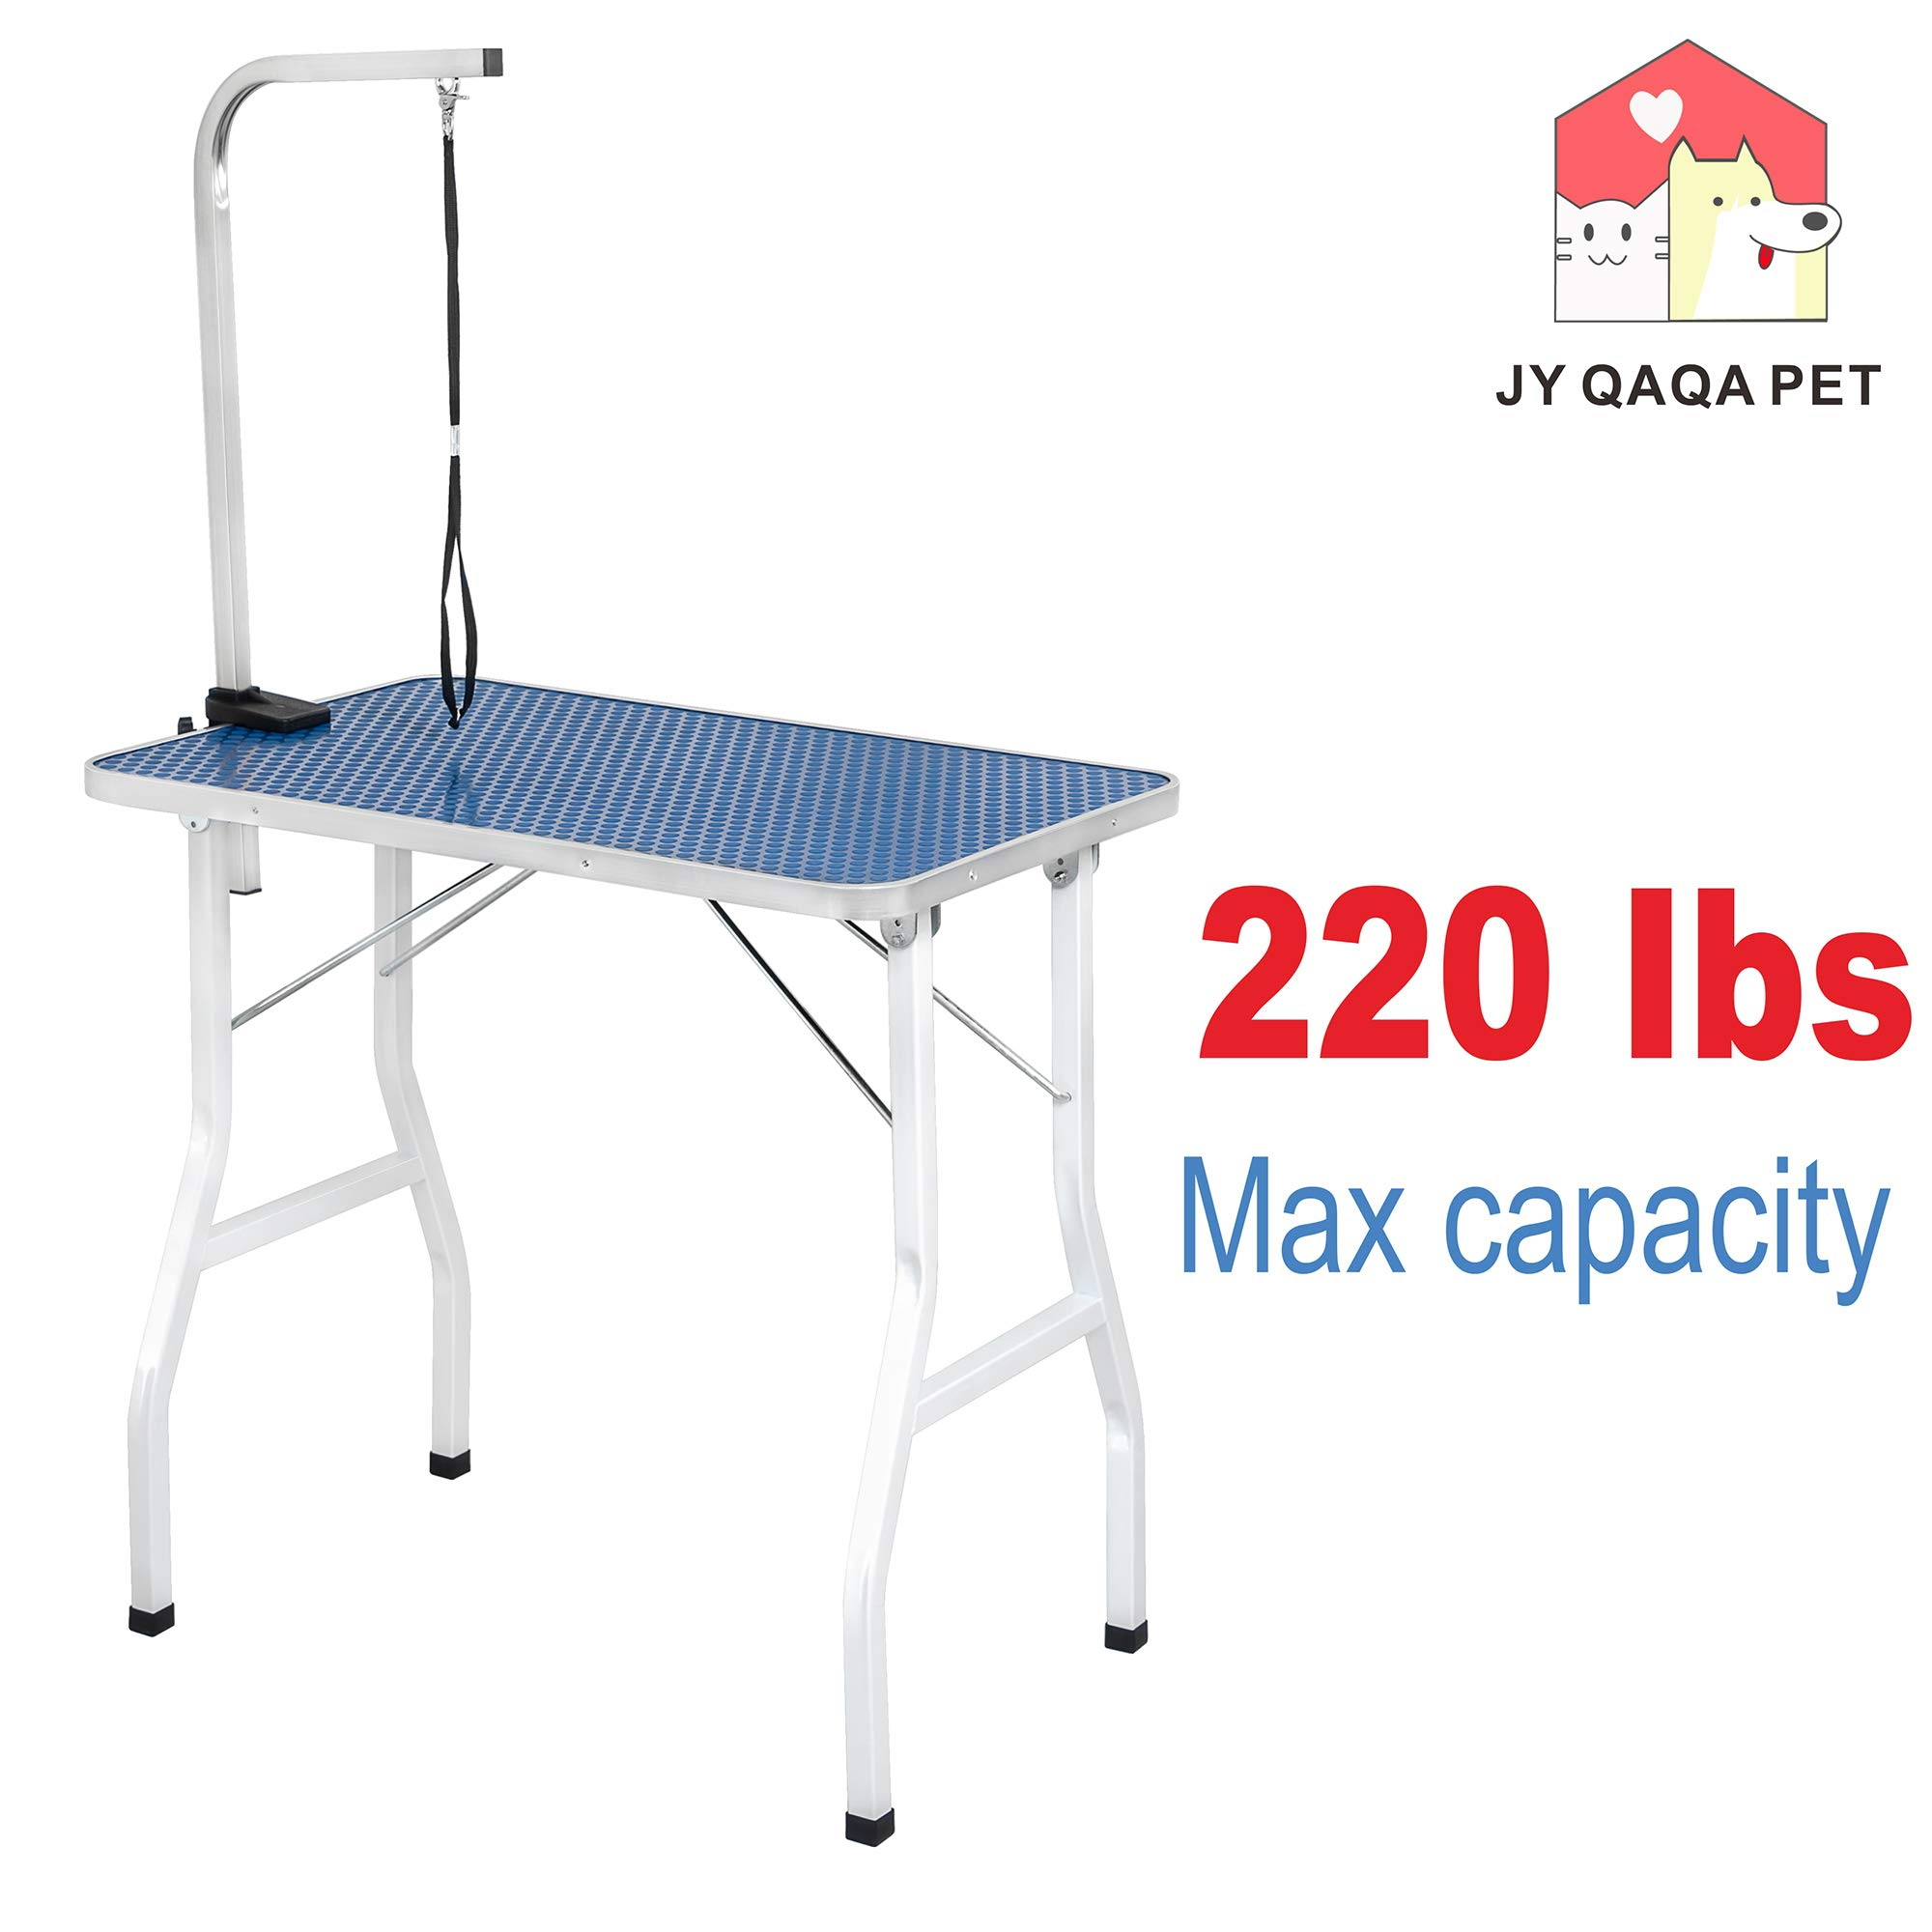 JY QAQA PET 32'' Professional Foldable Pet Dog Grooming Table with Adjustable Arm,Maximum Capacity Up to 120lbs